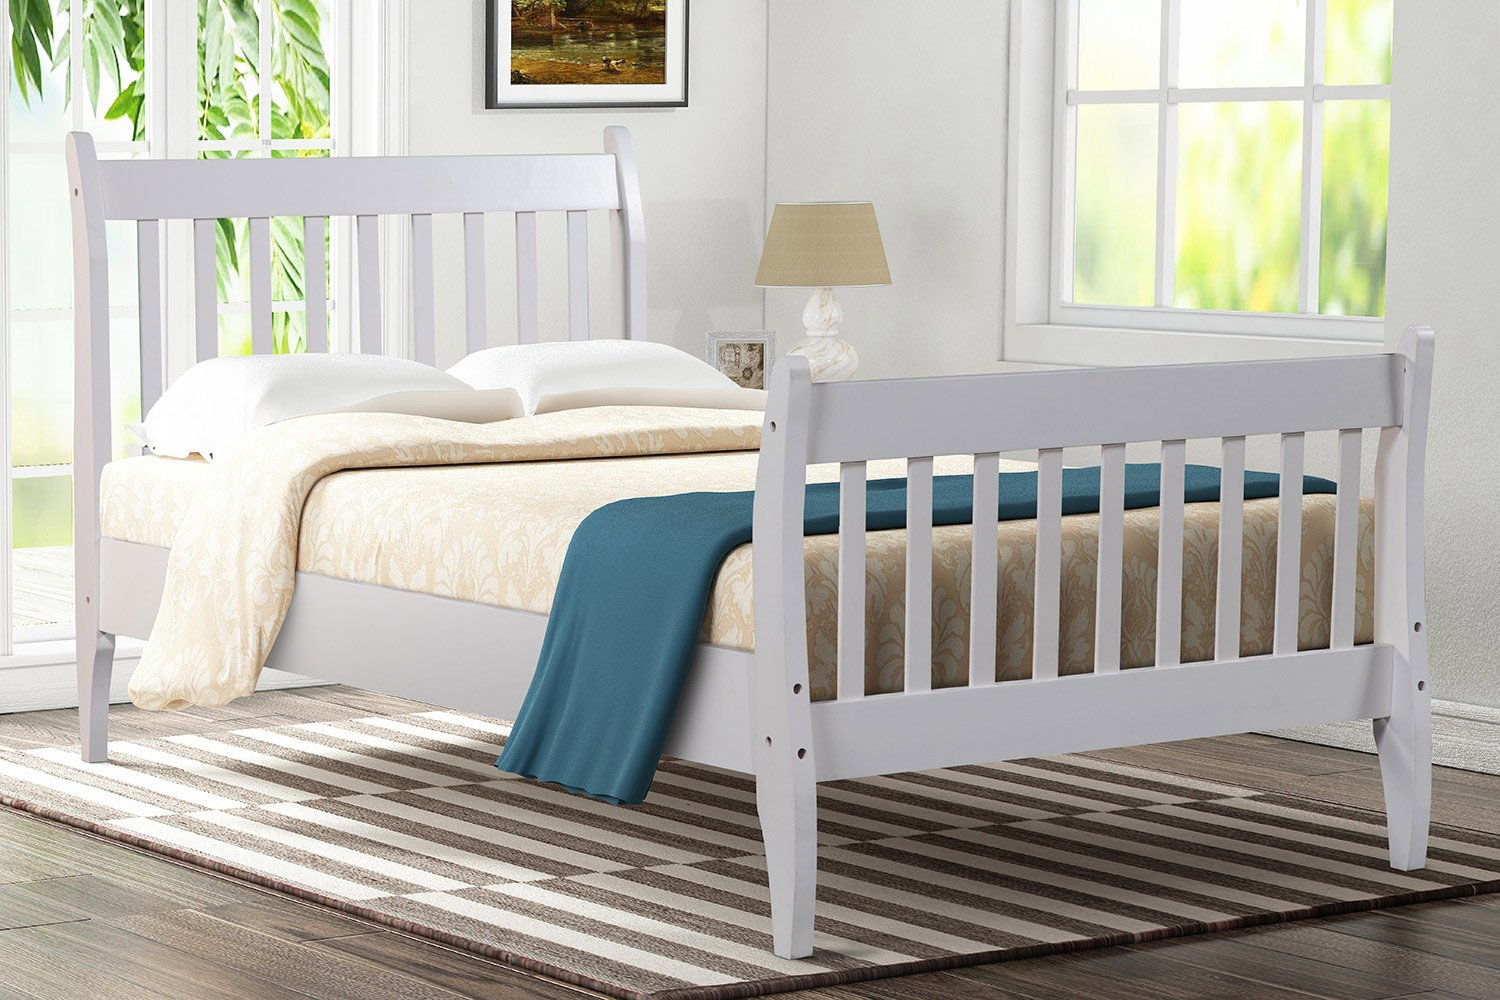 Merax Platform Bed Frame Mattress Foundation with Wood Slat Support, Twin (White)